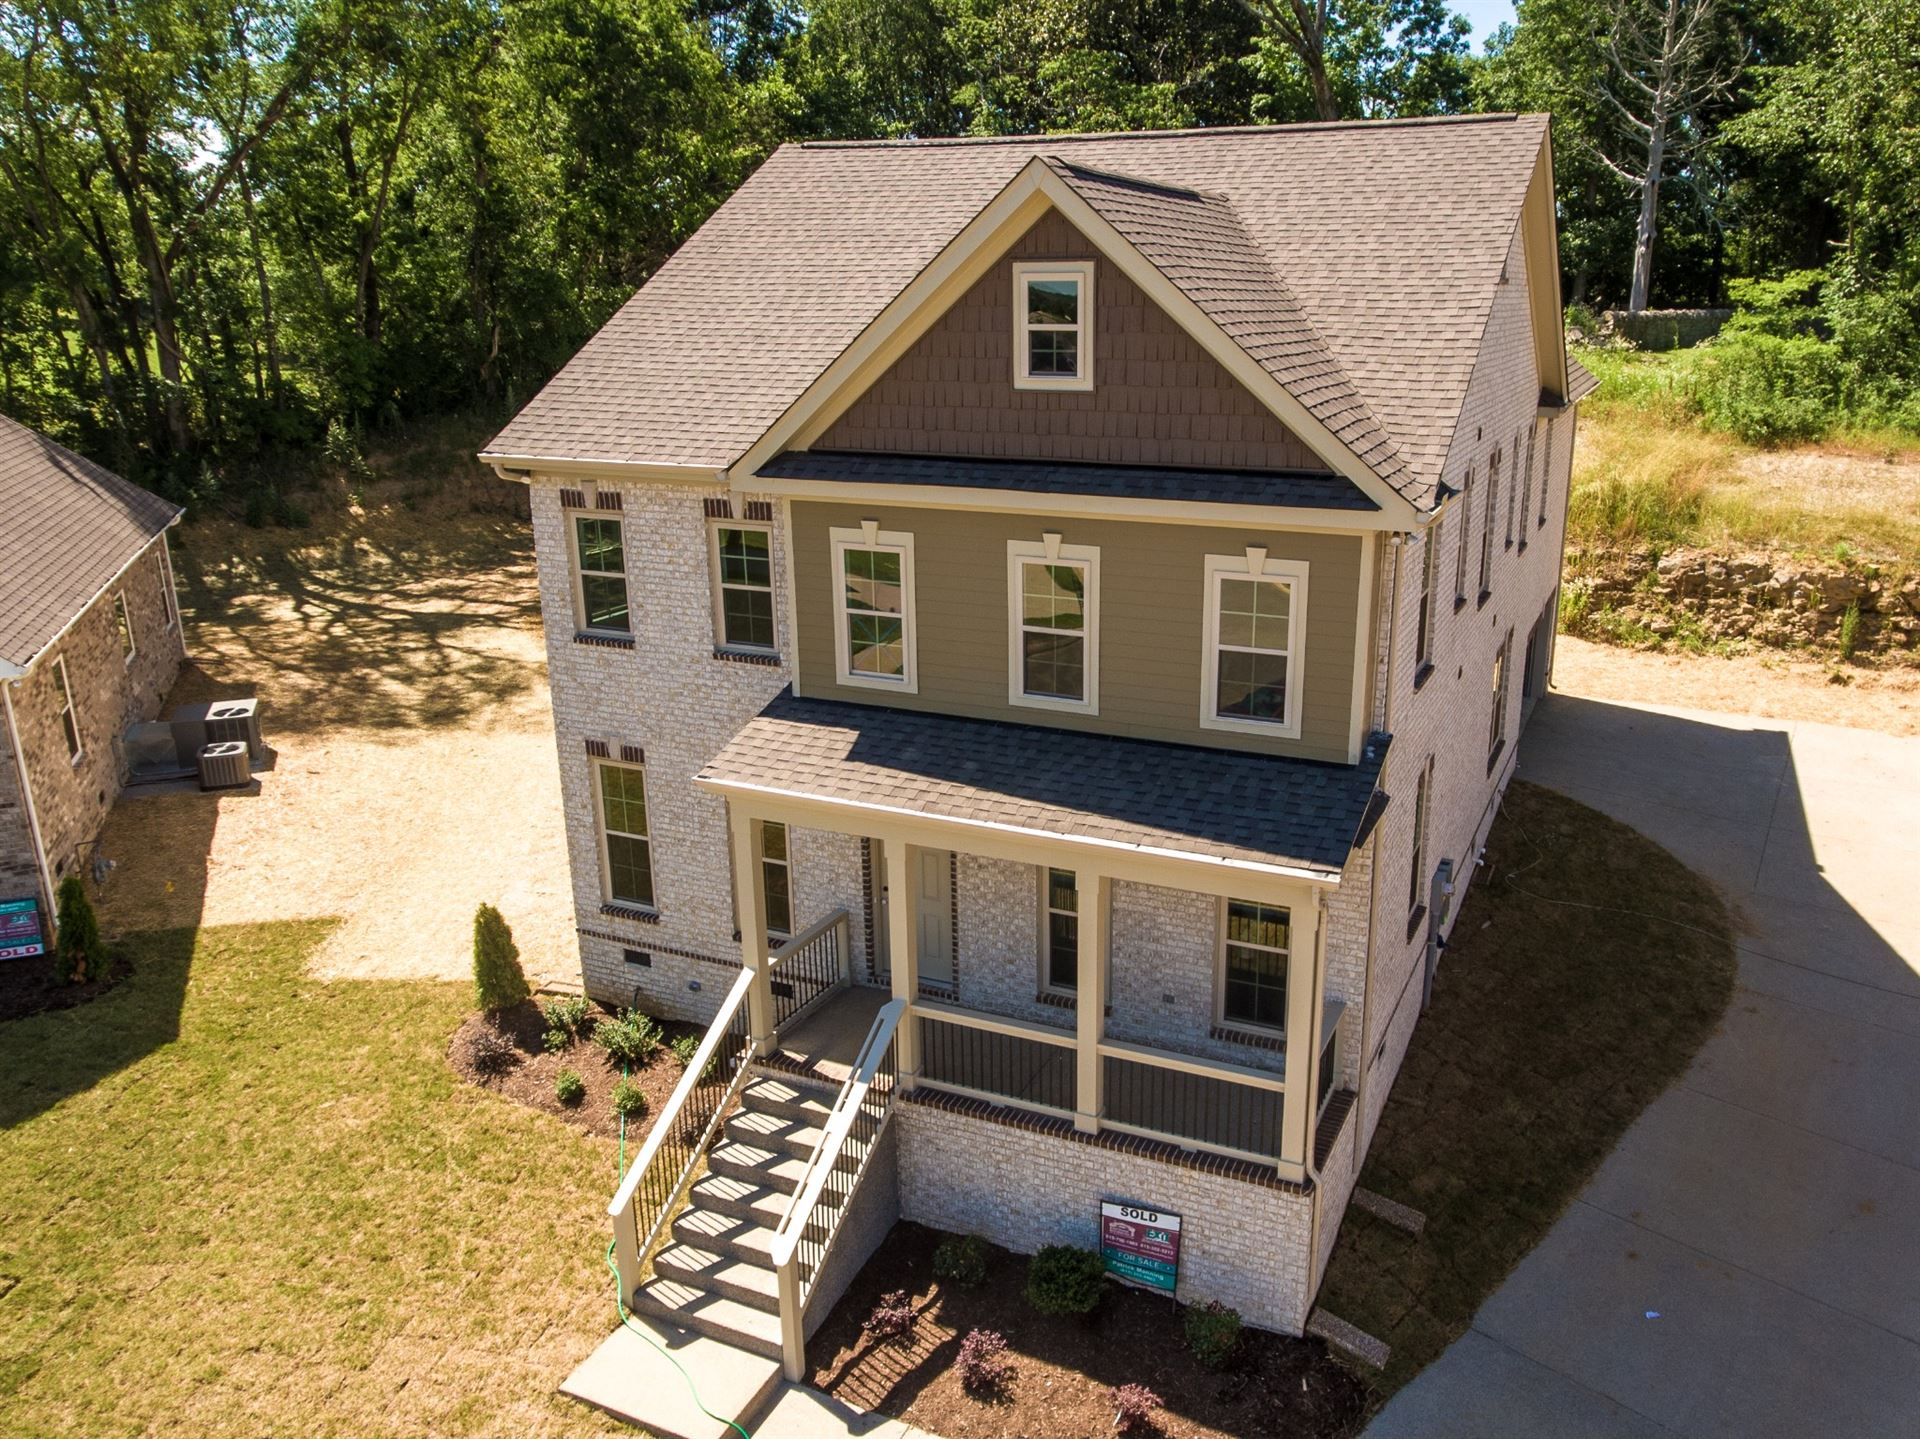 Photo of 2037 Lequire LN Lot 225, Spring Hill, TN 37174 (MLS # 2137546)